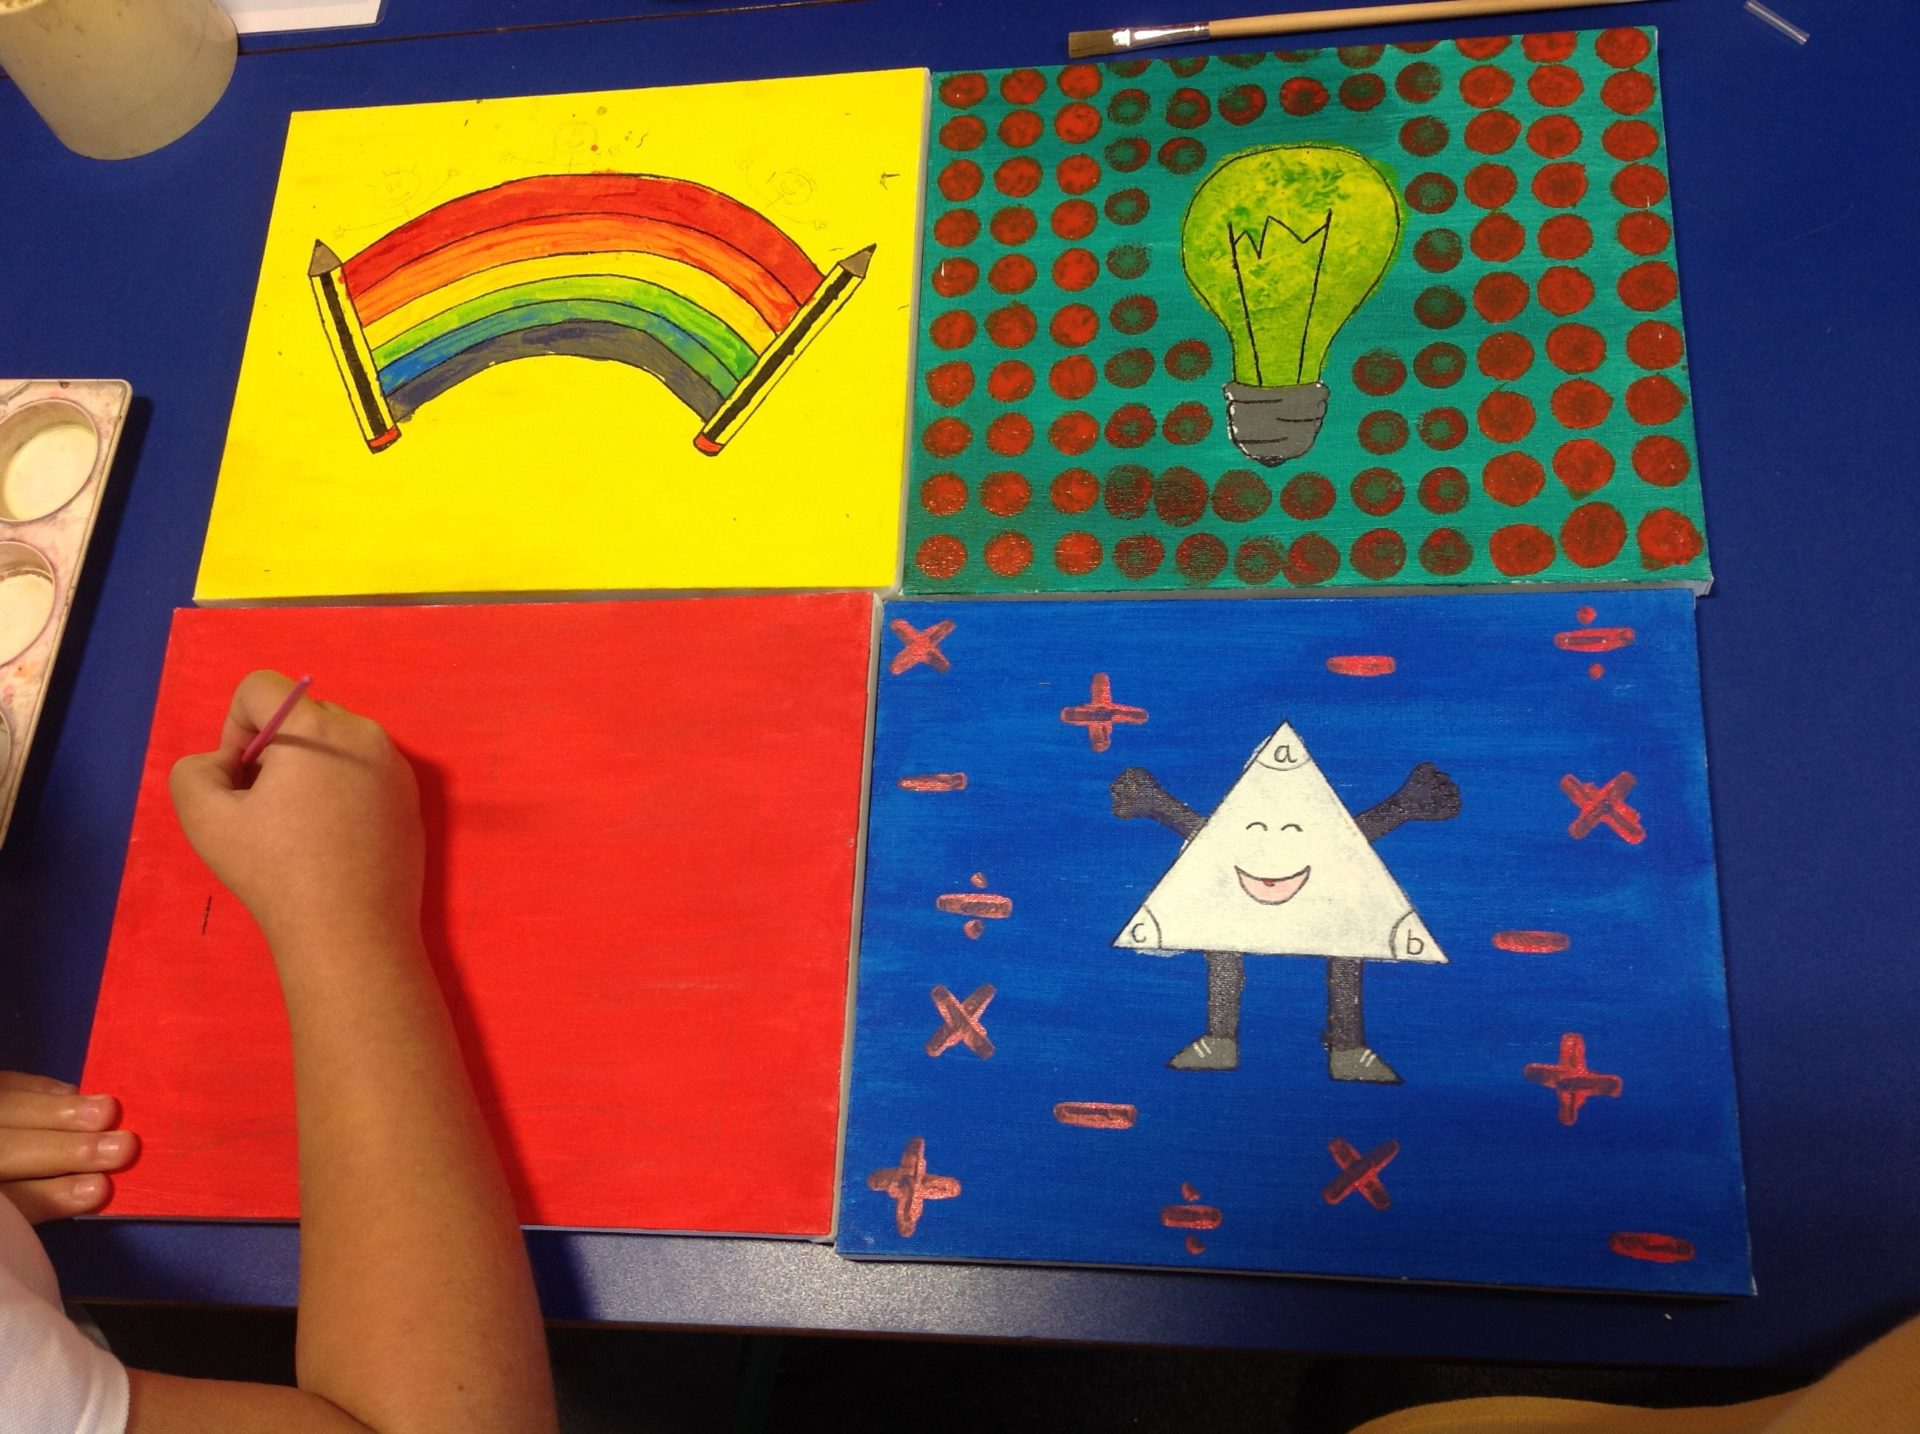 Andy Warhol Inspired Art at The Grange Primary School